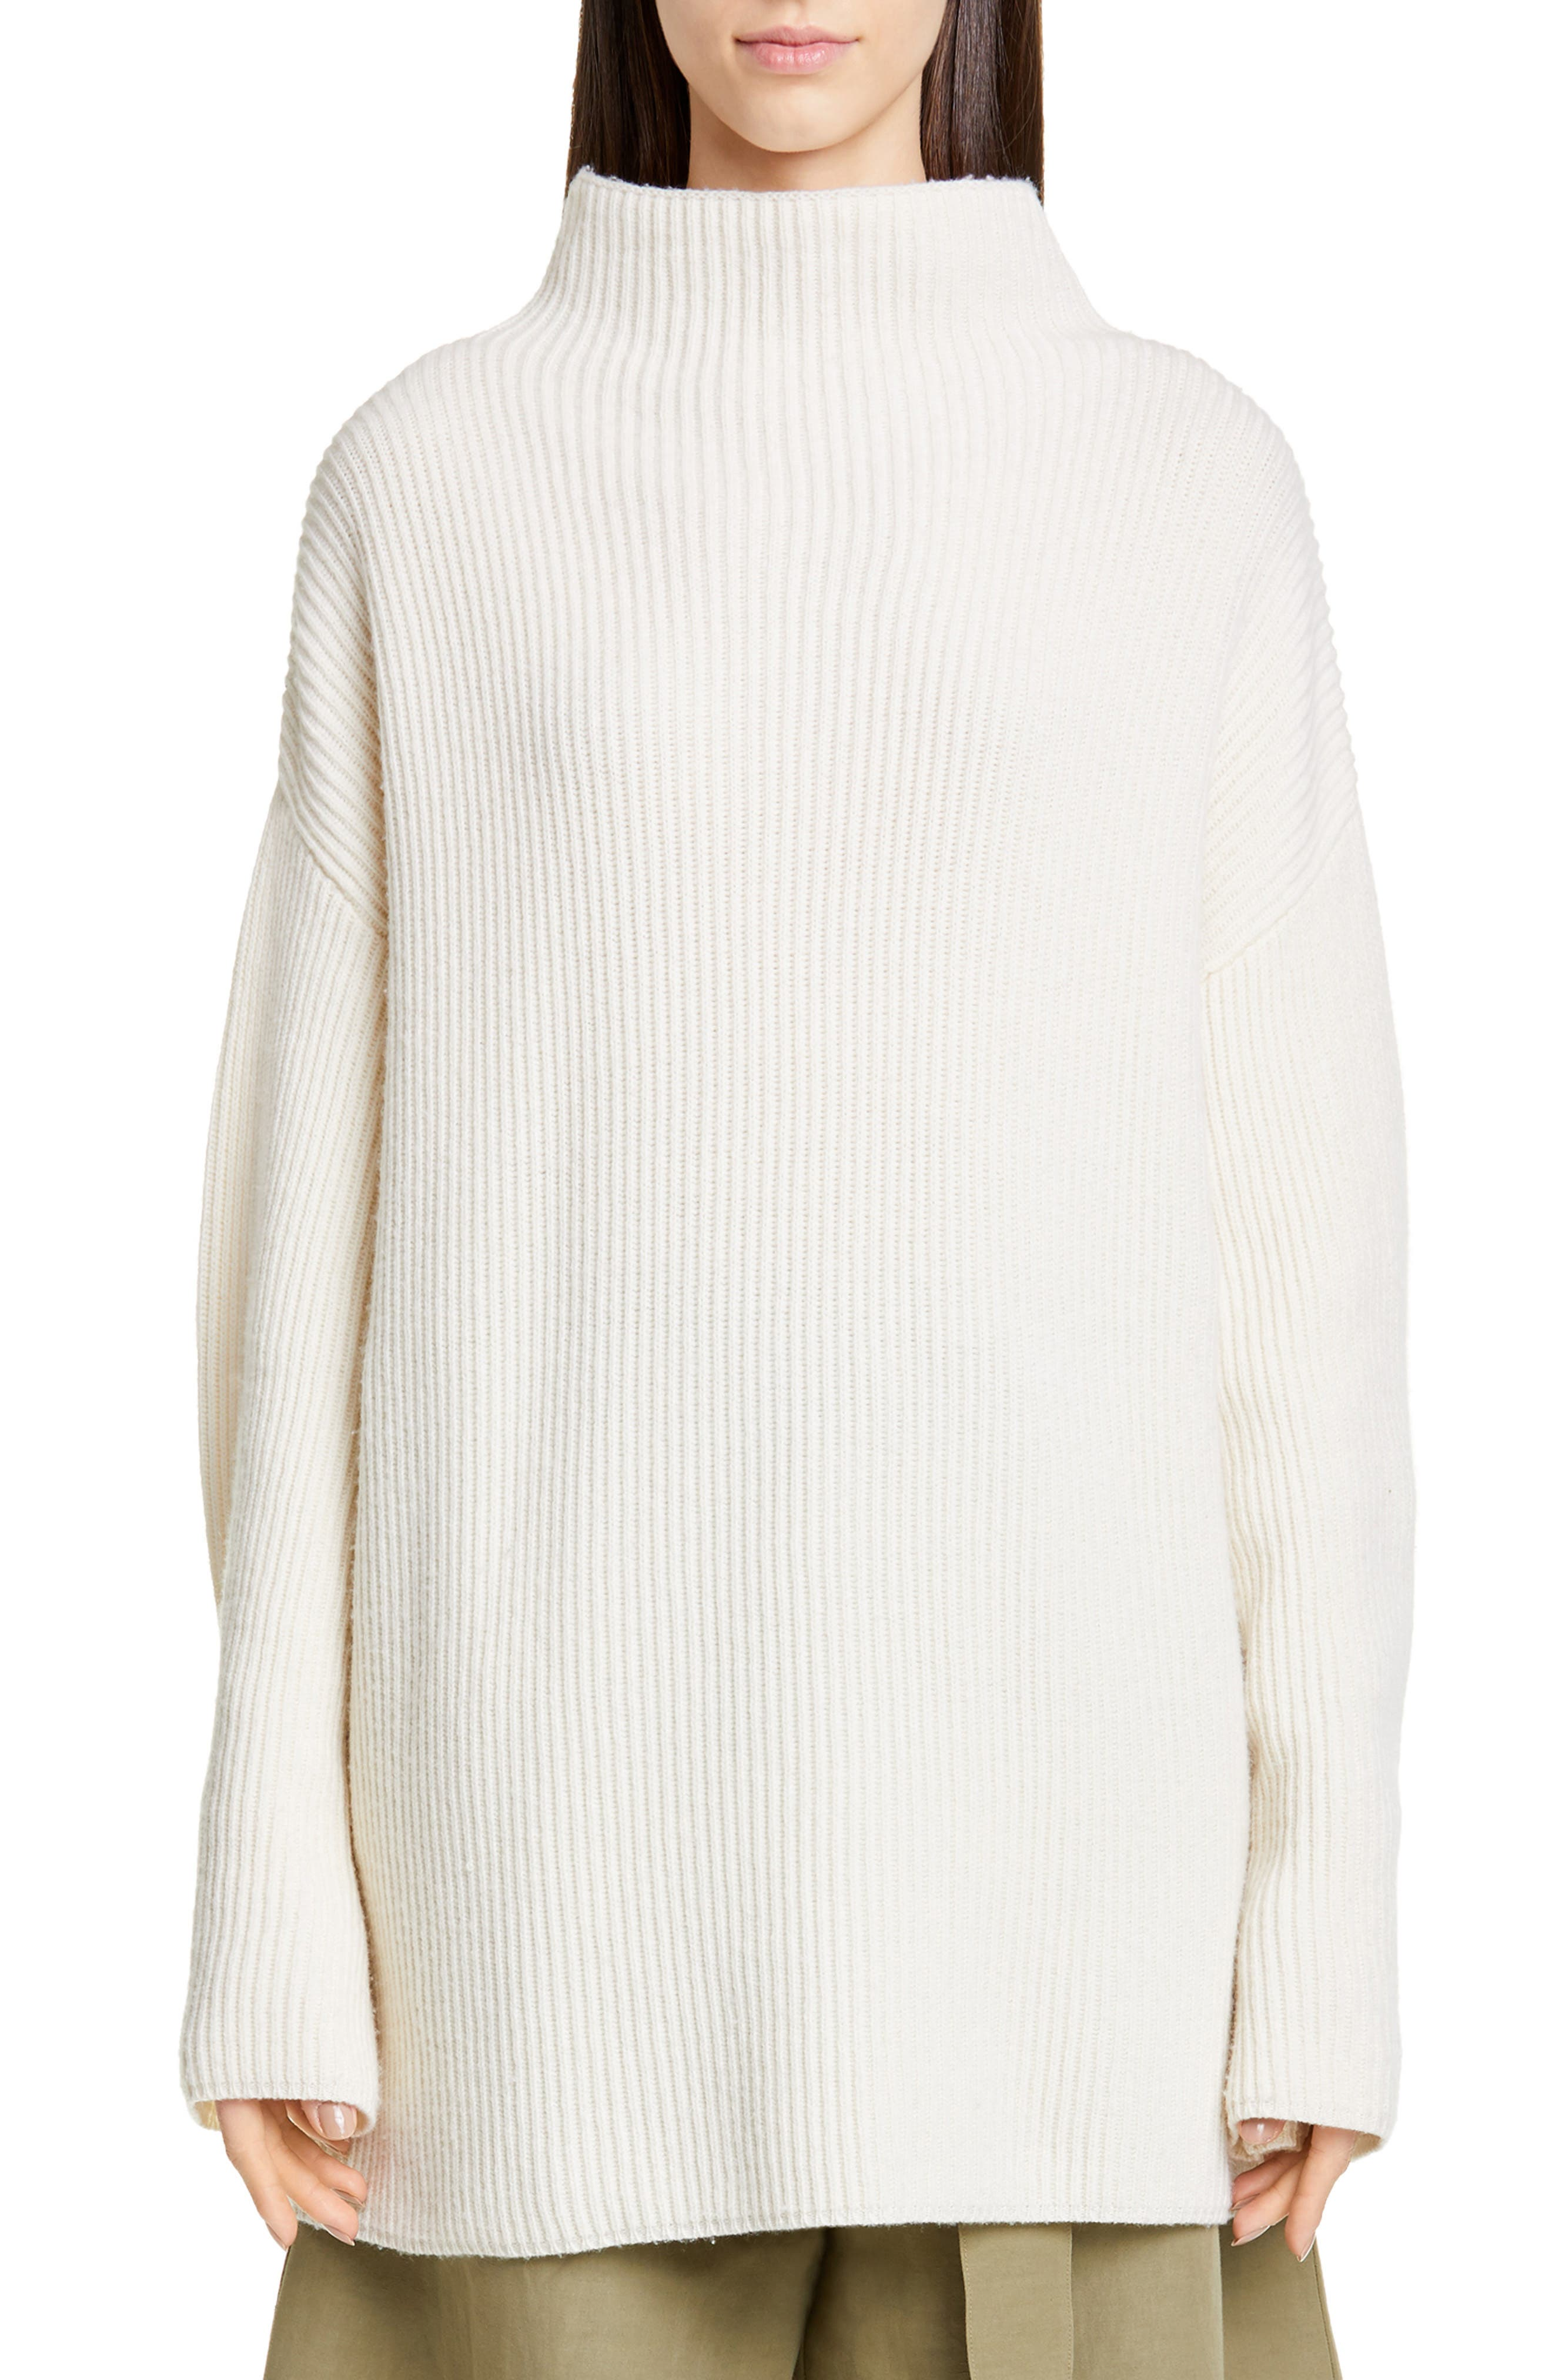 Co Button Cuff Wool & Cashmere Sweater, Ivory